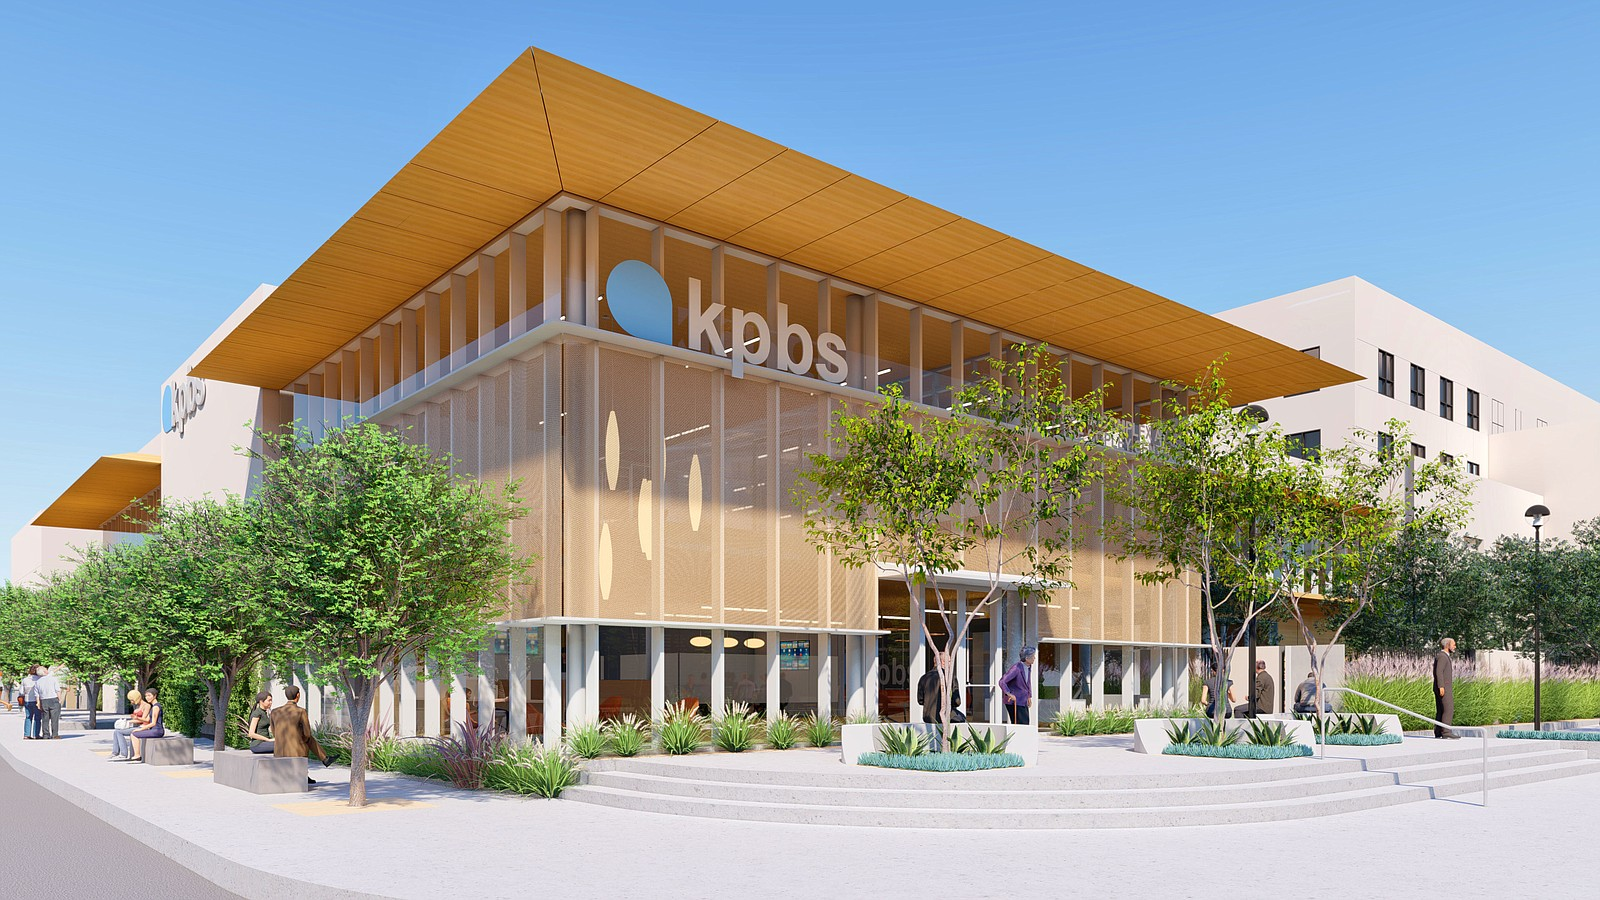 The KPBS Media Complex at the Copley Center is shown in this rendering.